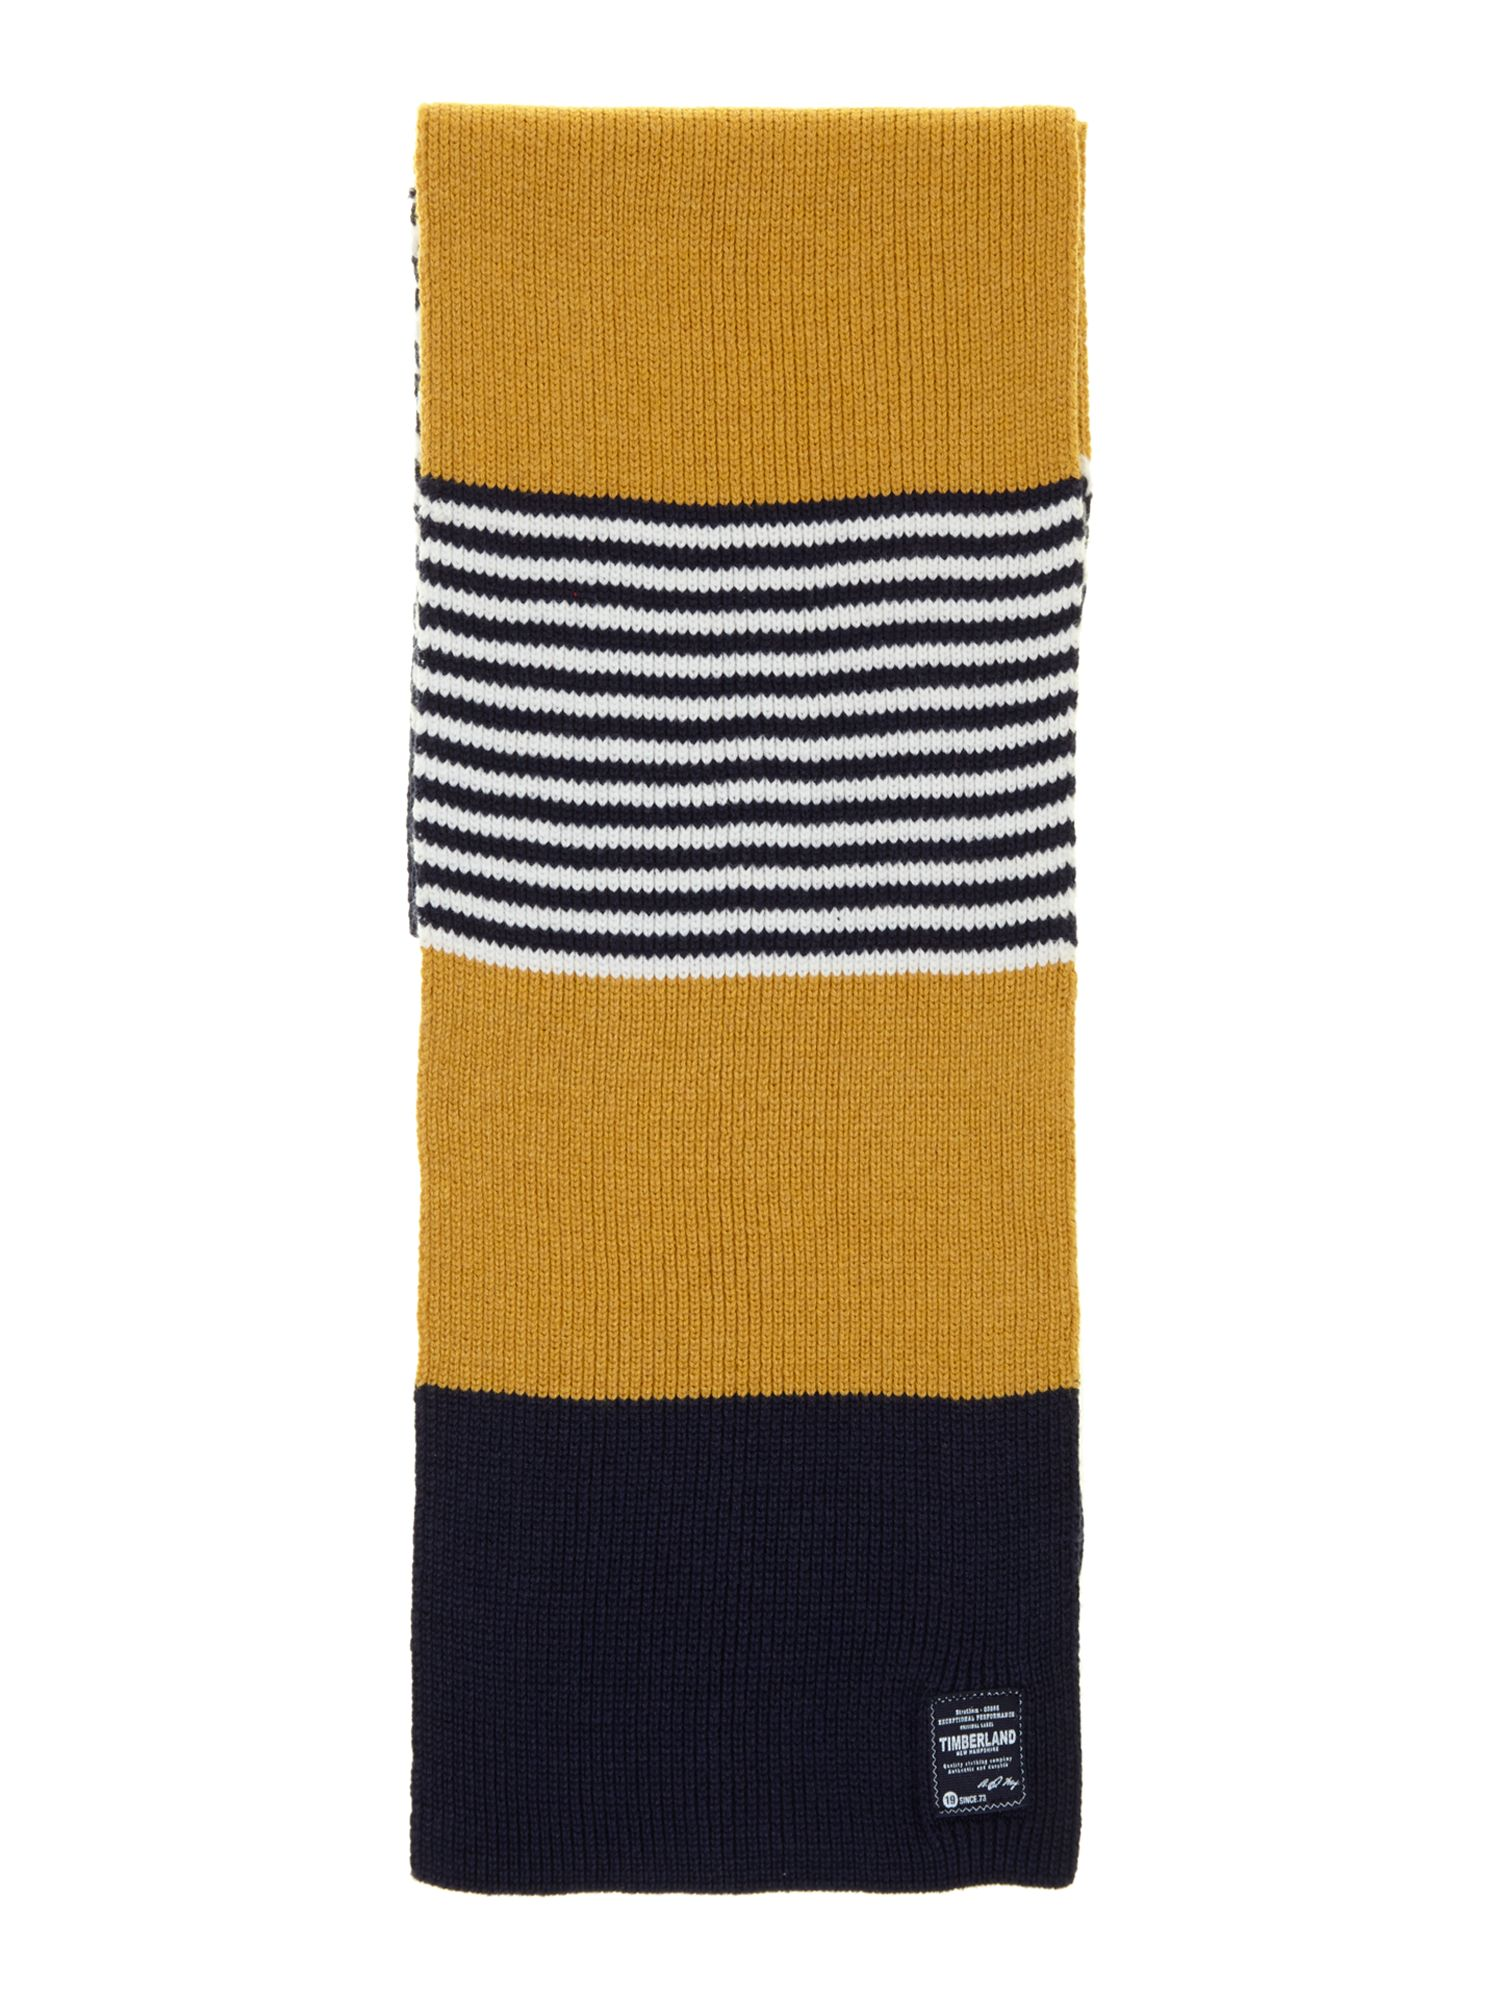 Boys knitted striped scarf